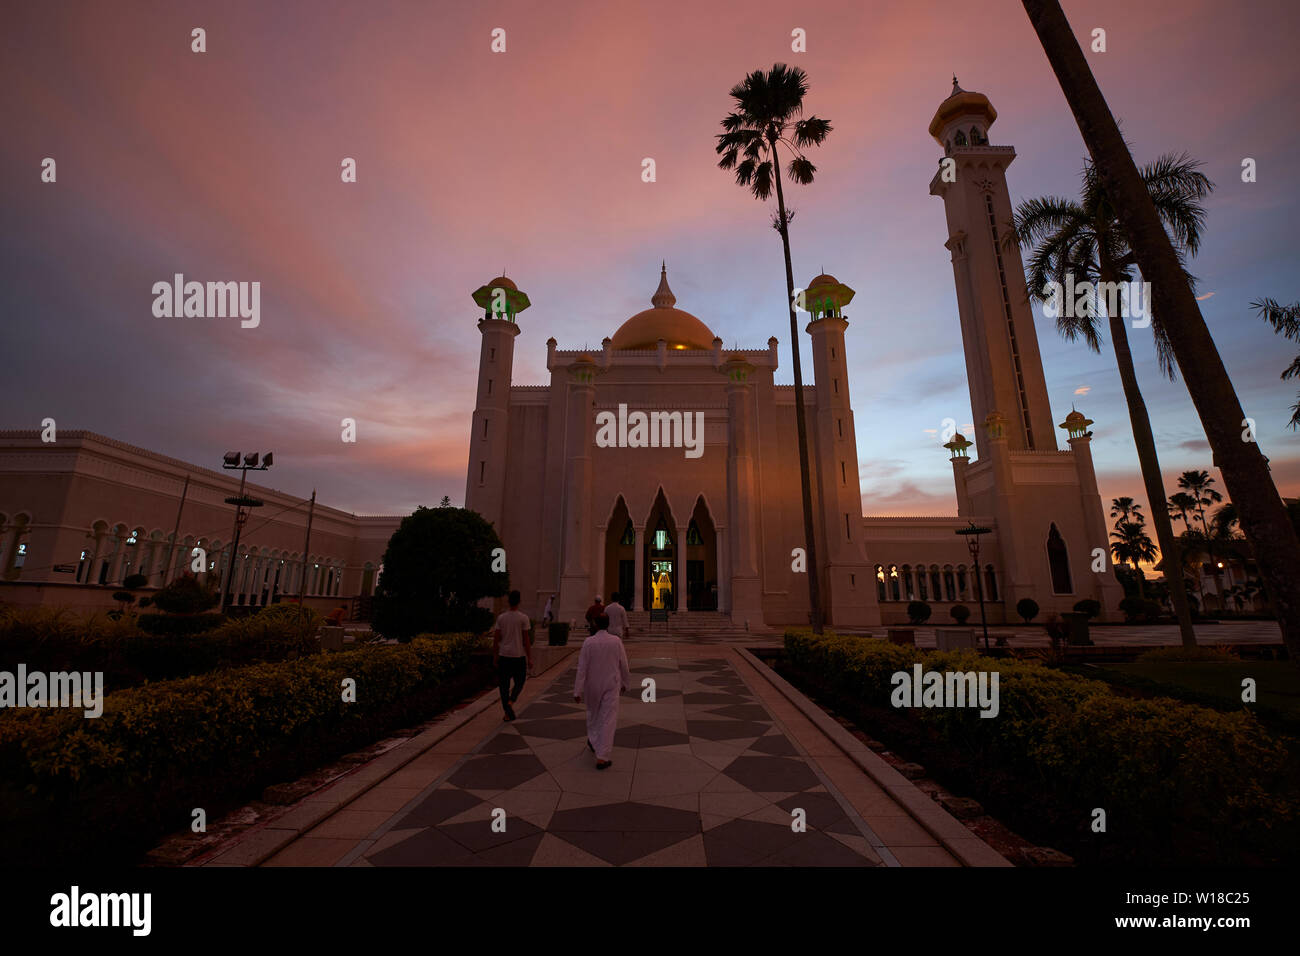 Sunset view of the call to prayer at the Omar Ali Saifuddien mosque in downtown Bandar Seri Begawan,Brunei. - Stock Image